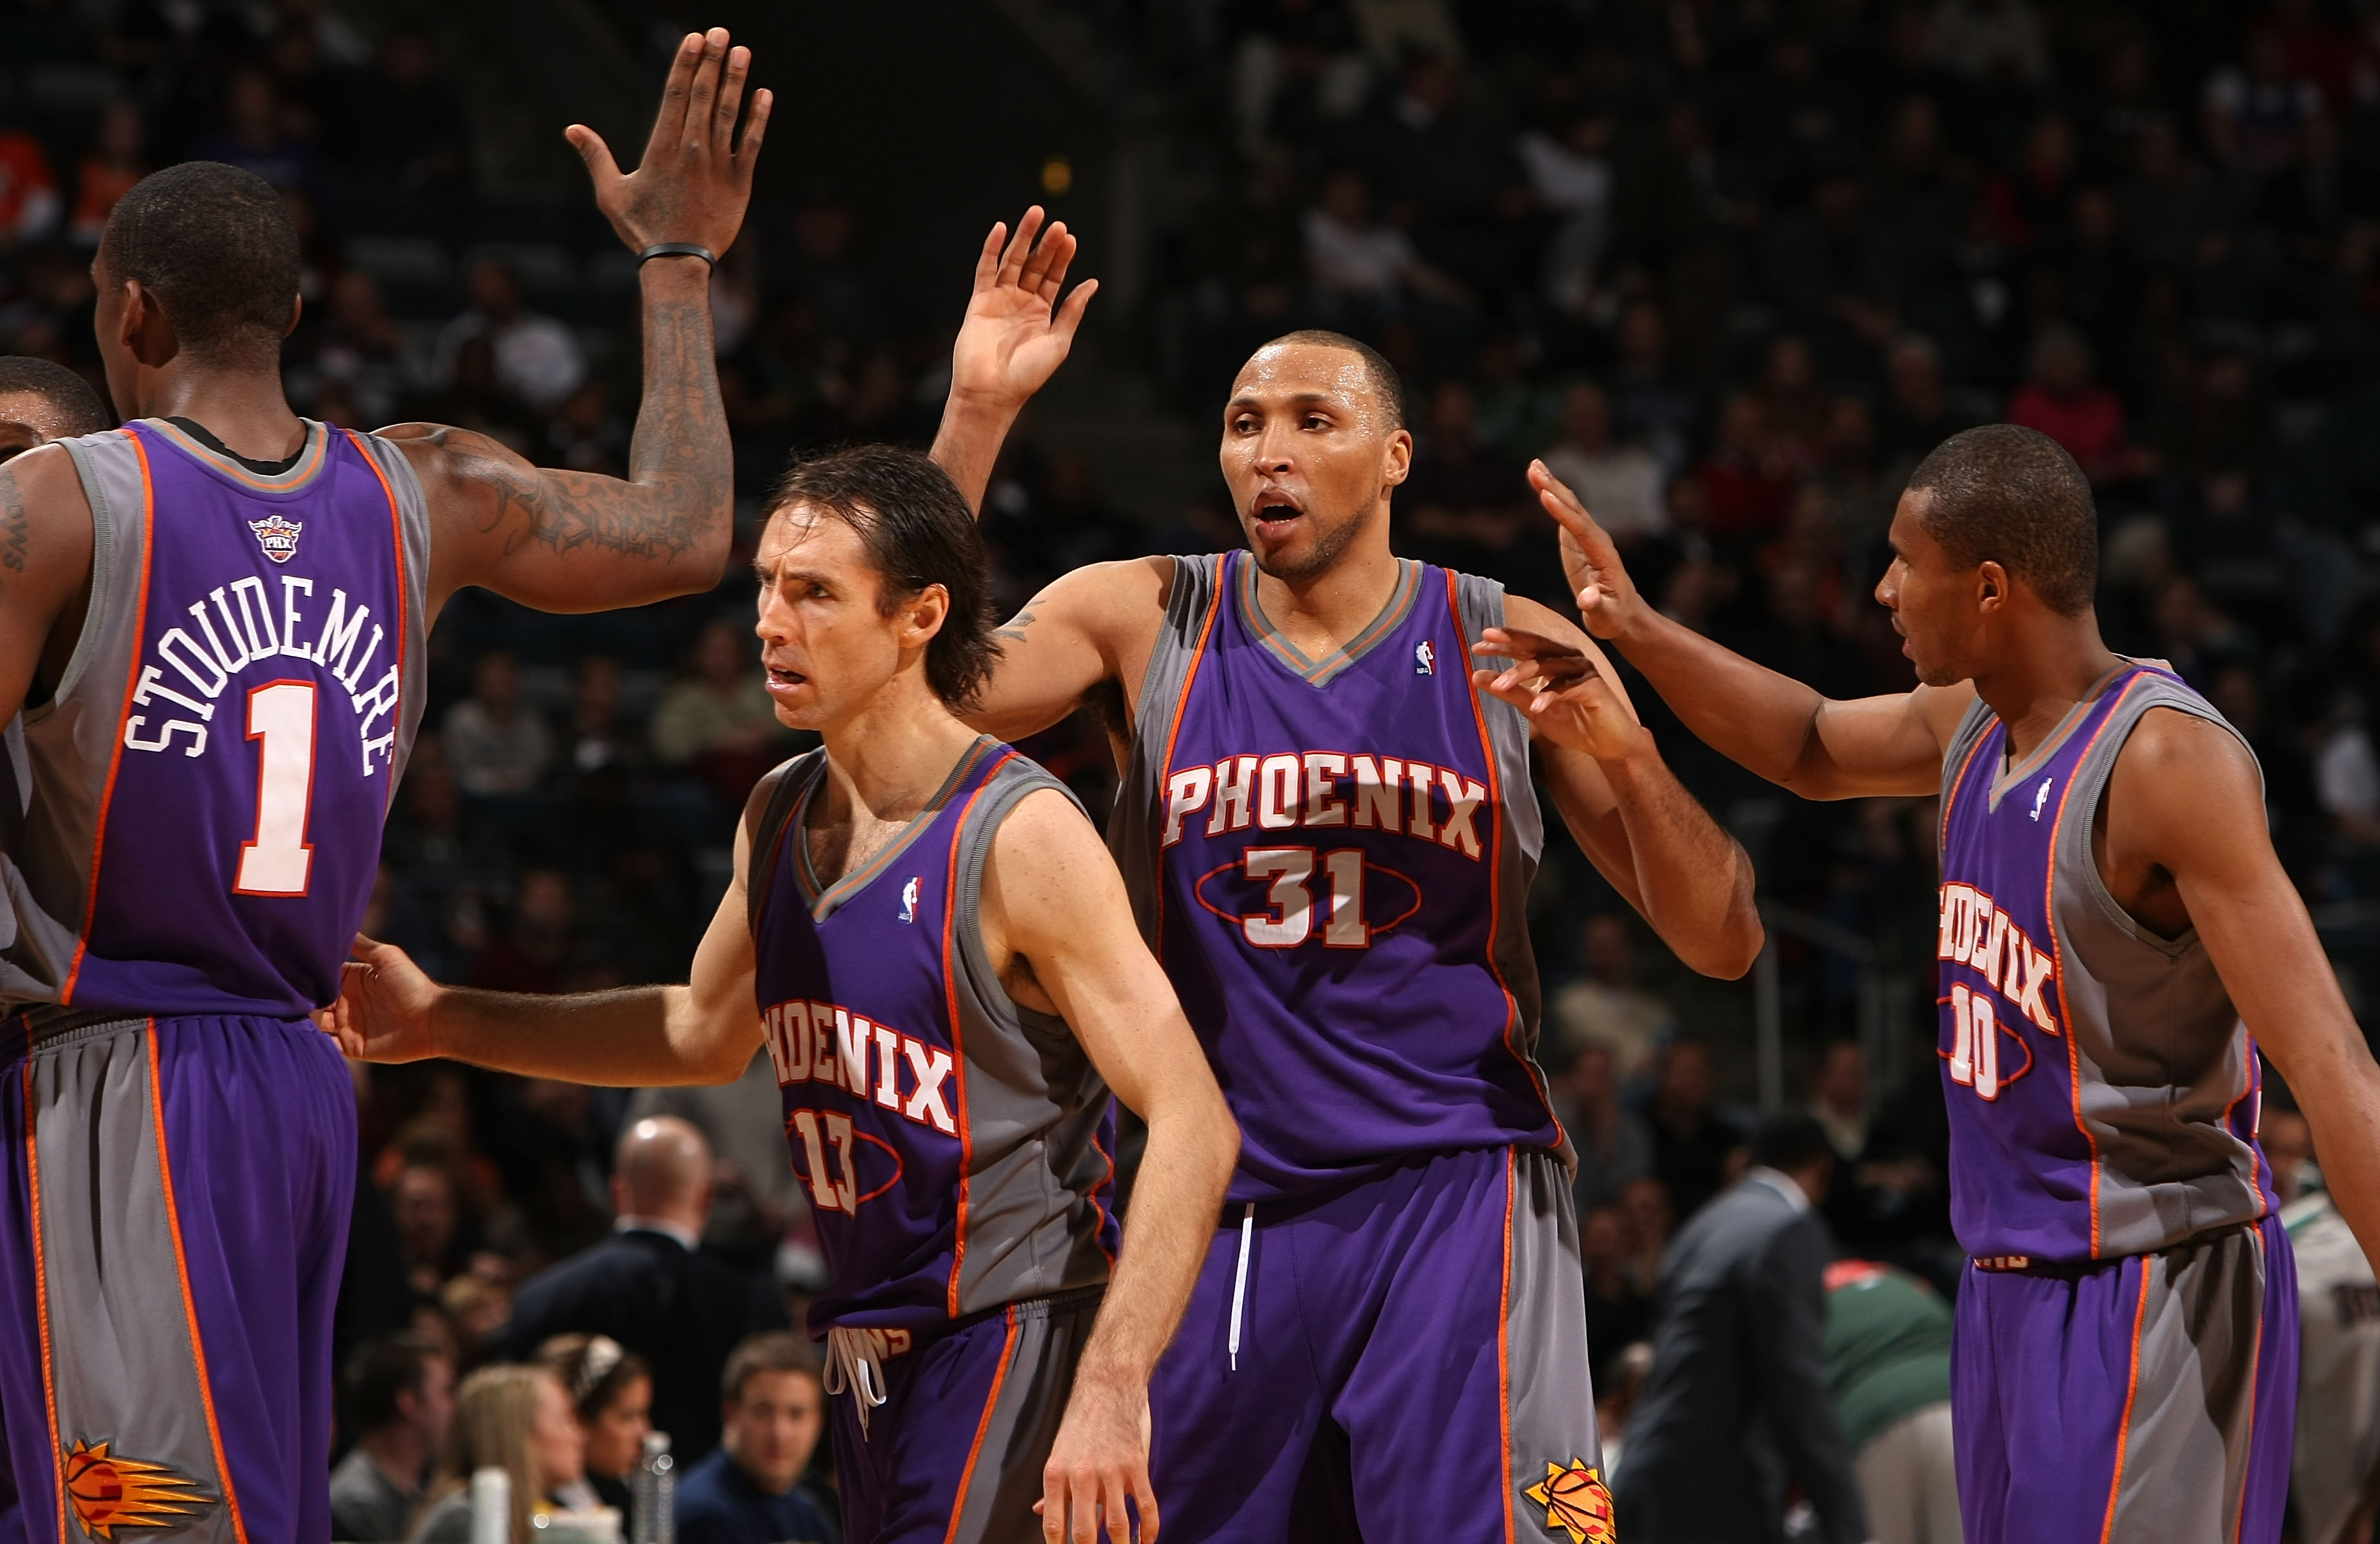 MILWAUKEE - JANUARY 22:  (L-R) Amare Stoudemire #1, Steve Nash #13, Shawn Marion #31 and Leandro Barbosa #10 of the Phoenix Suns celebrate late in the game against the Milwaukee Bucks at the Bradley Center on January 22, 2008 in Milwaukee, Wisconsin. The